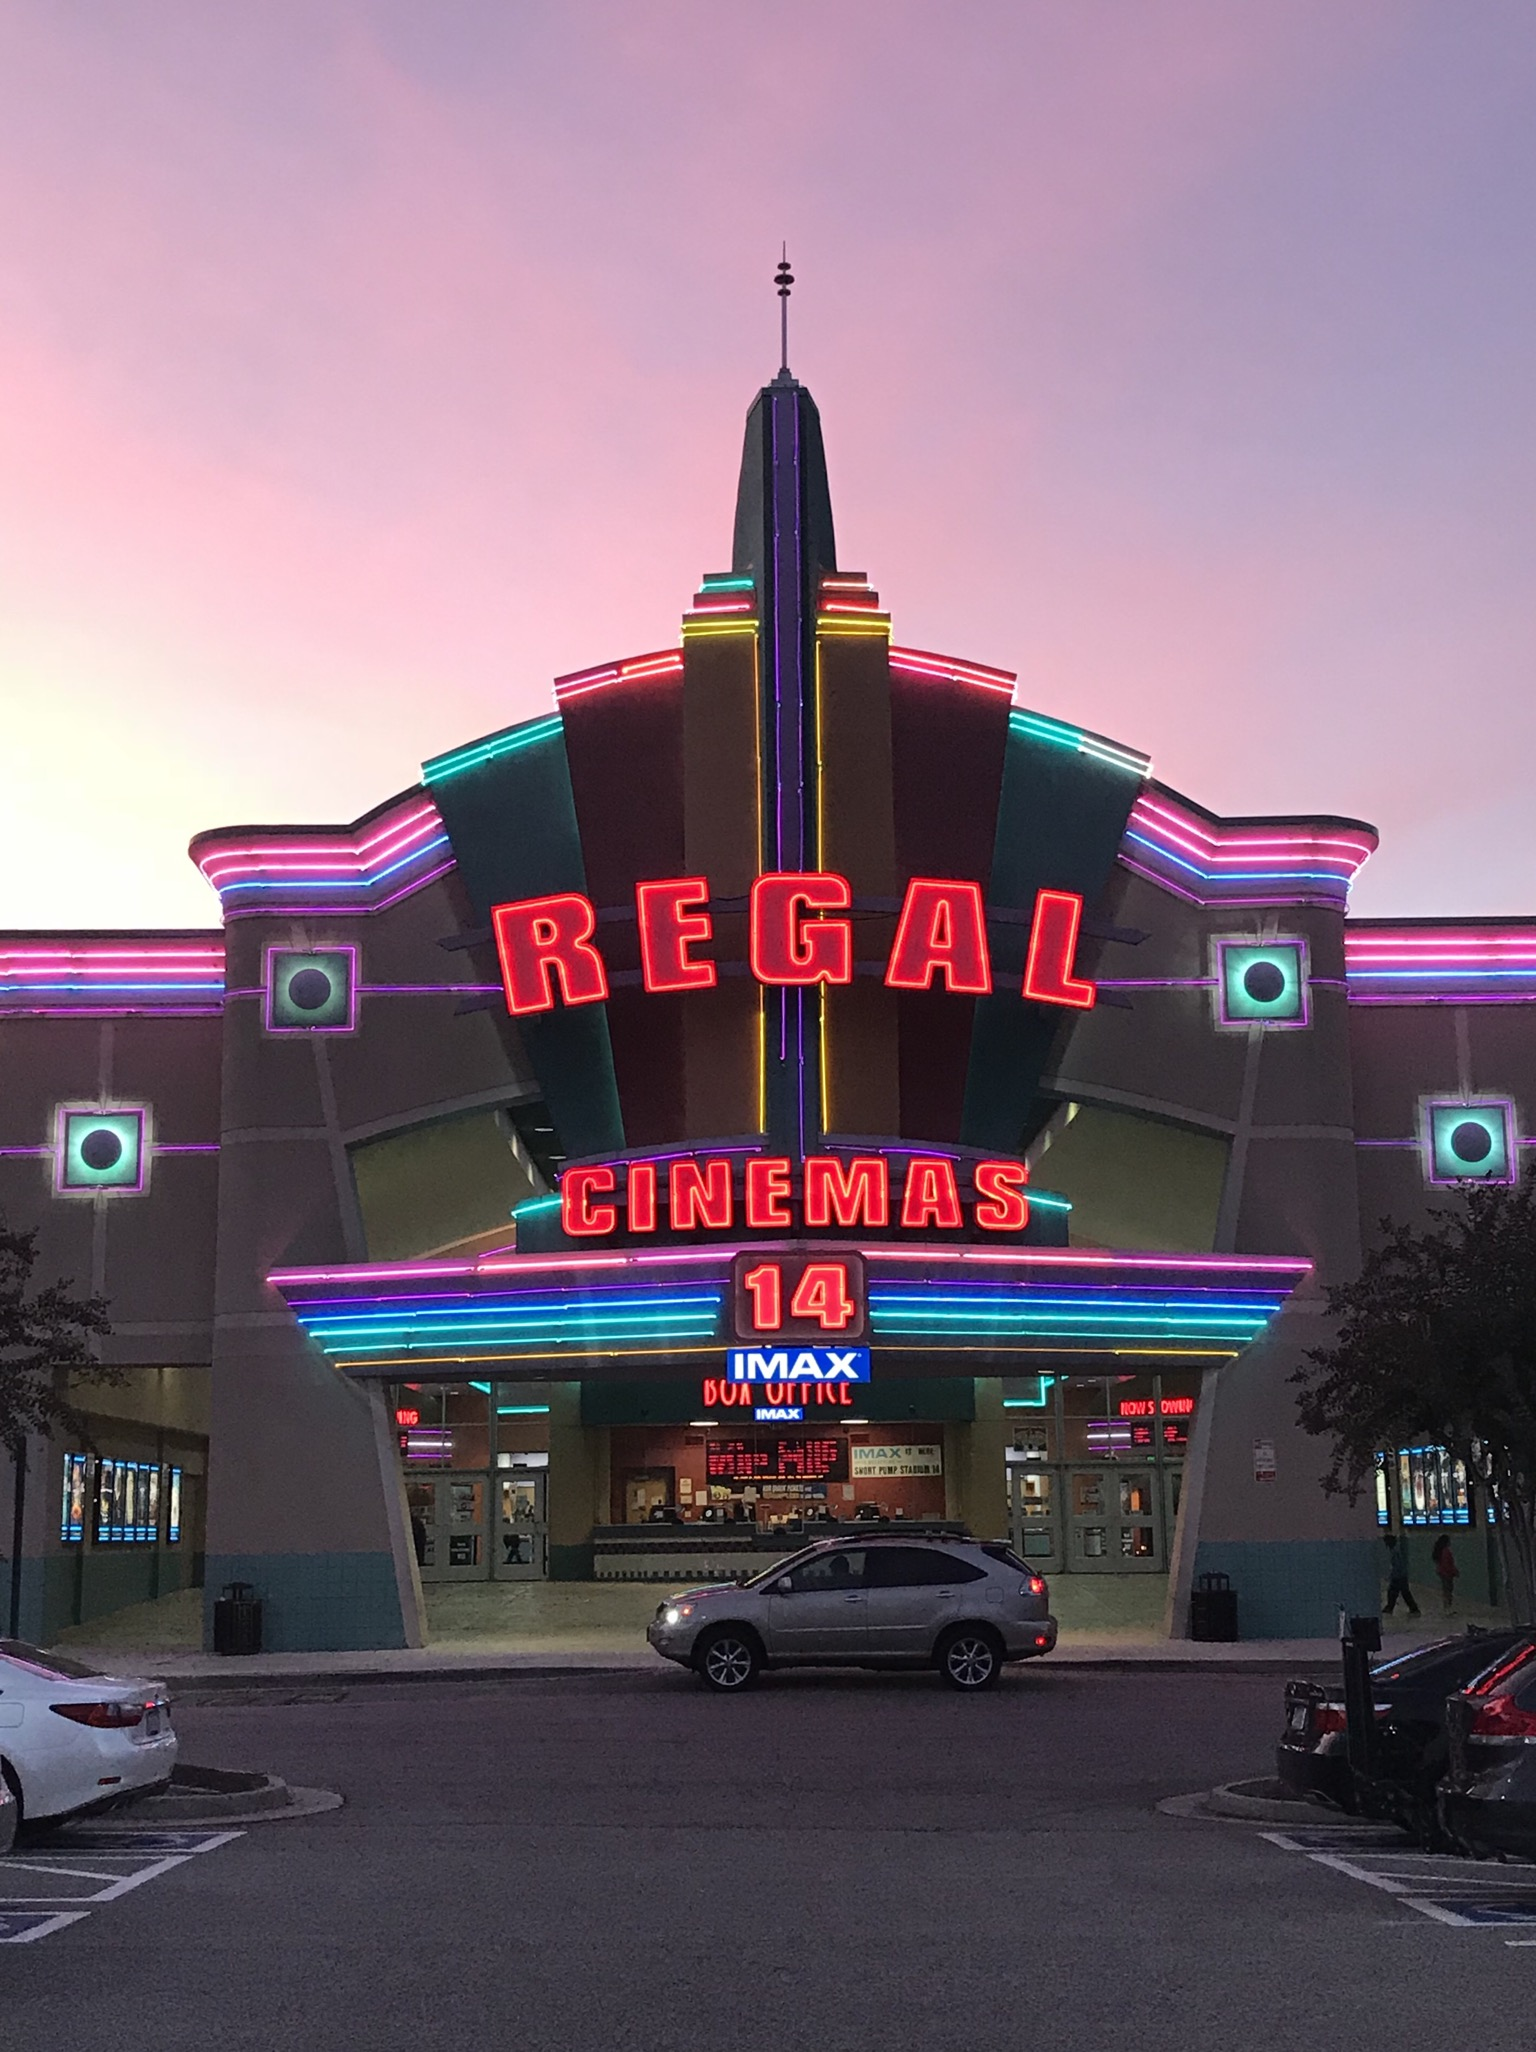 Did you know that several of the movie theaters in the Greenville area offer super cheap movies over the summer months? With plenty of hot afternoons ahead and cranky kids to entertain, catching one of these movies would be the perfect way to spend your afternoon.